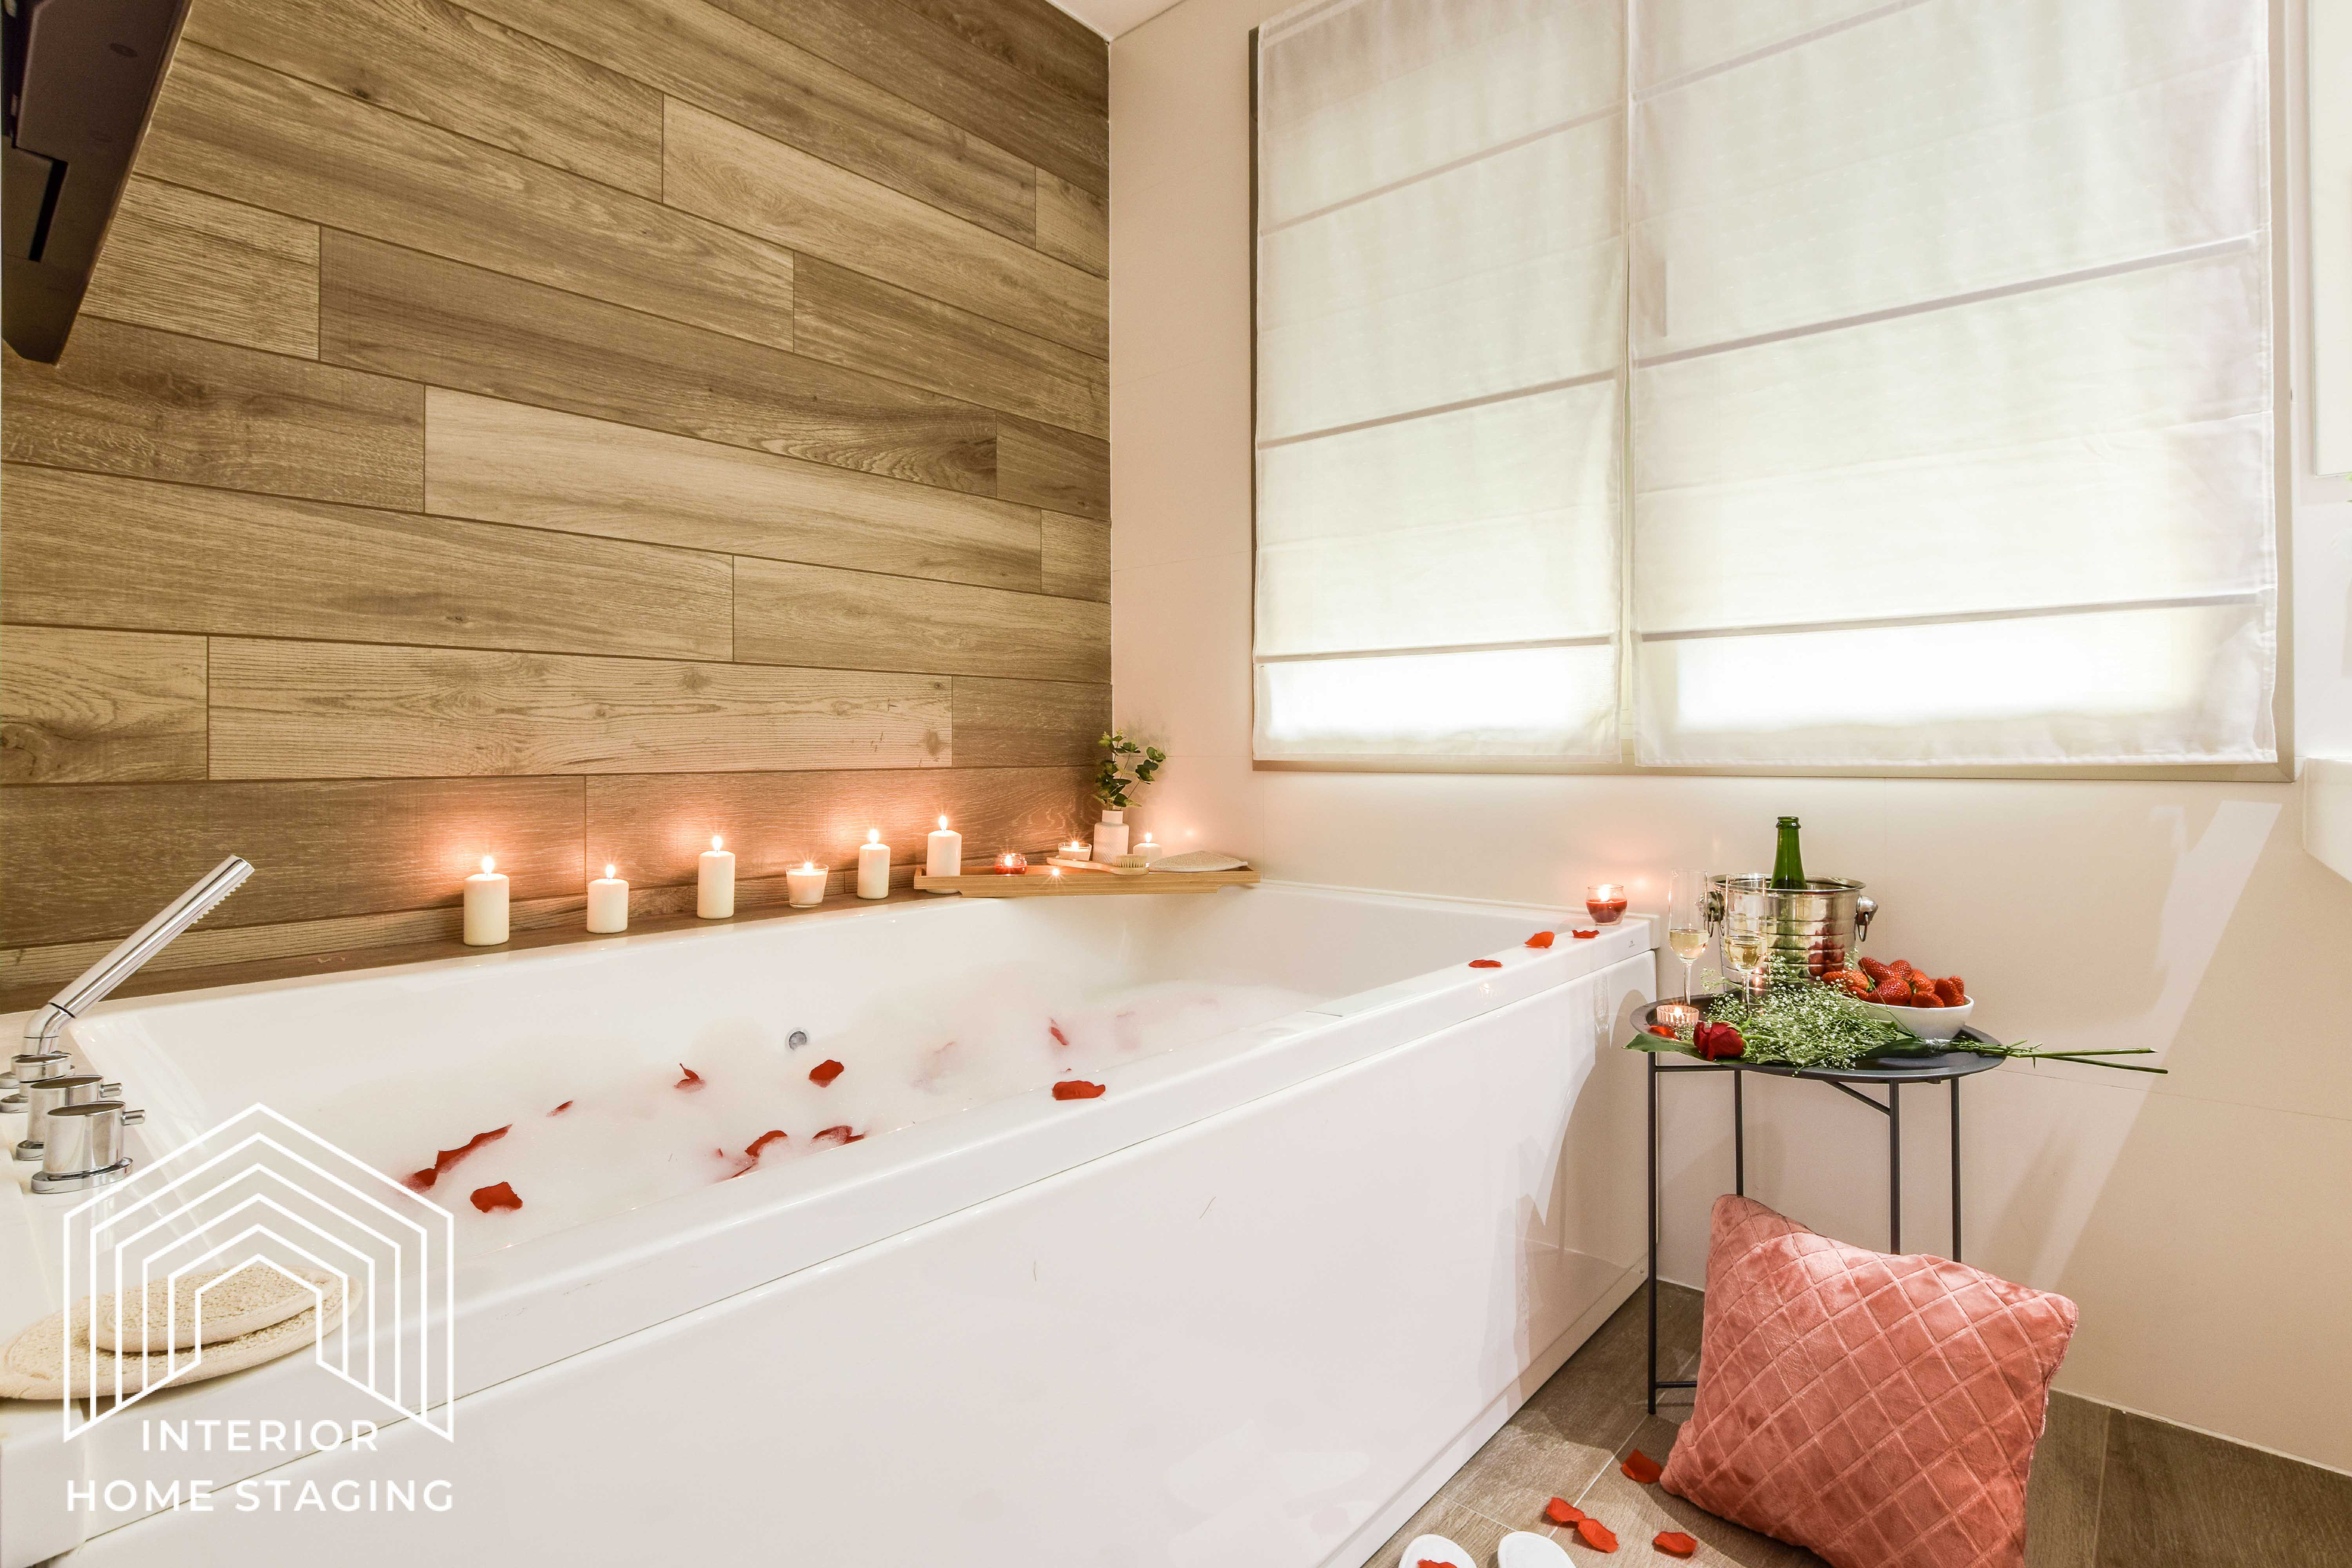 Interior Home Staging jacuzzi baño